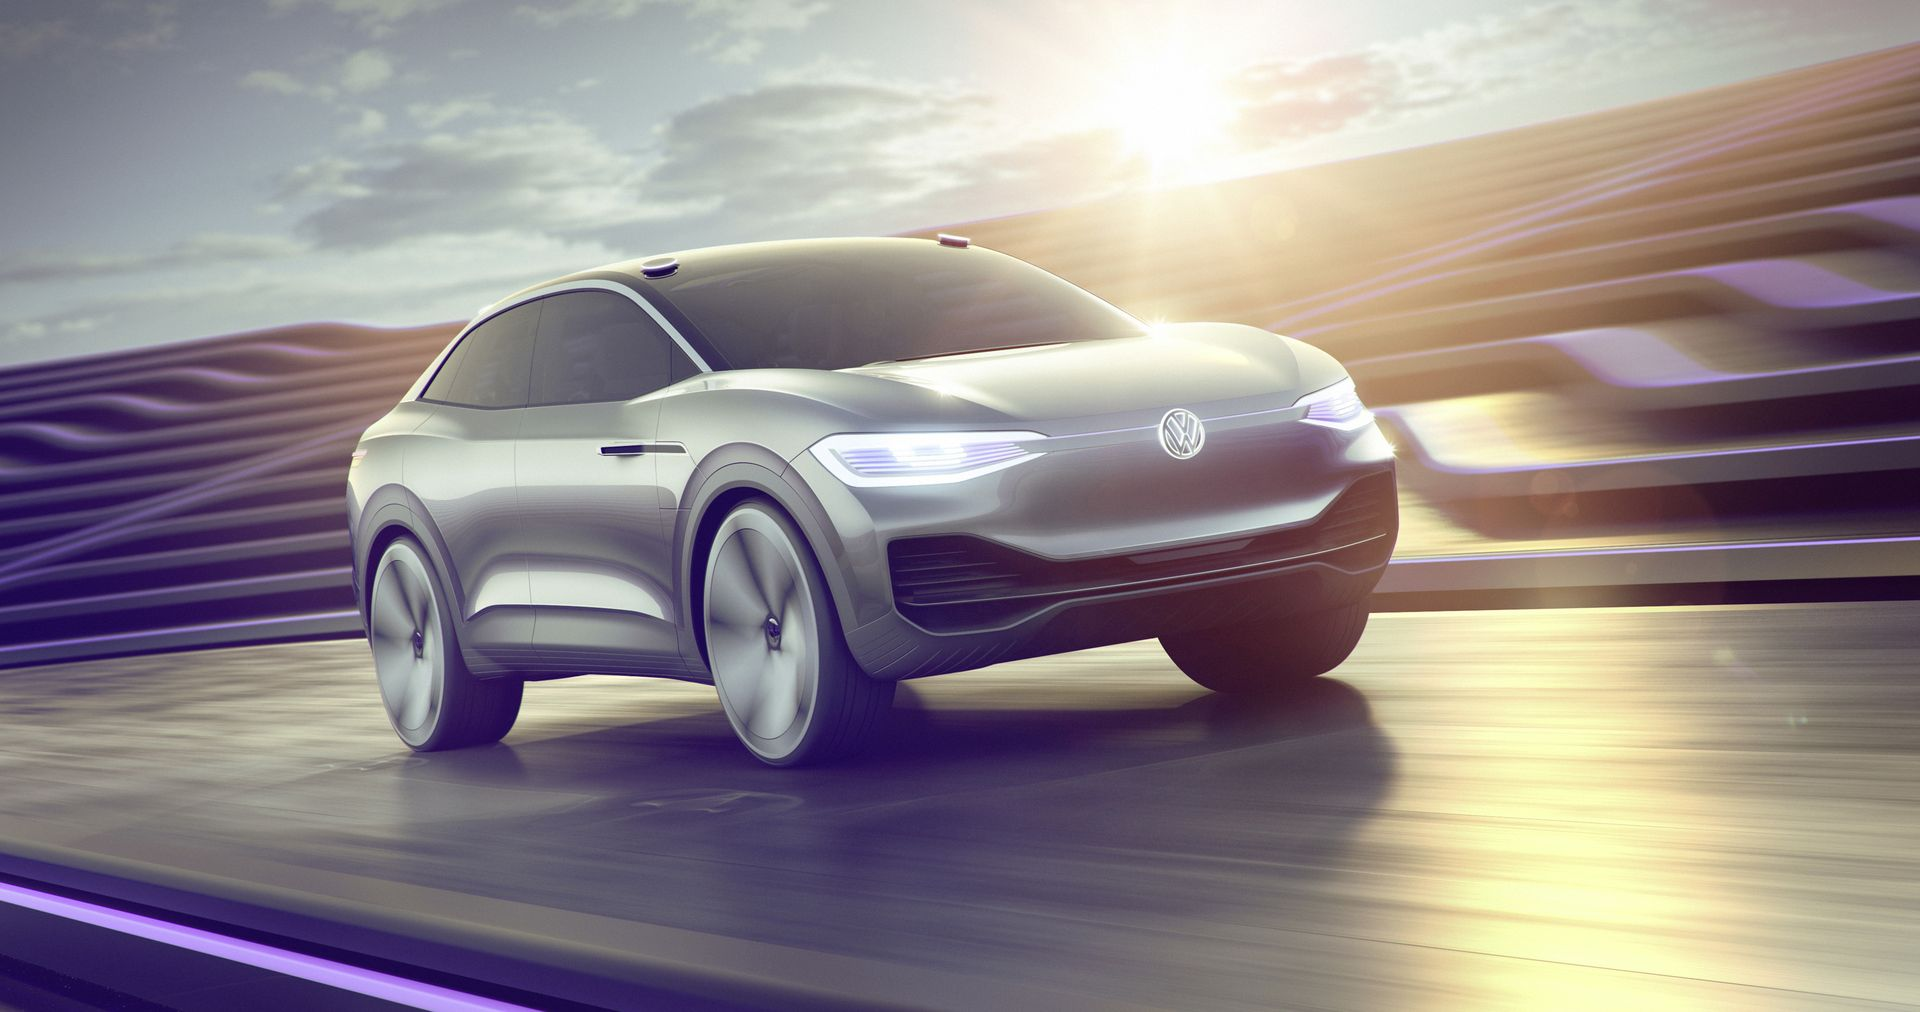 Bill Ford Says Automaker Pairs Well With VW: Shared Electric Cars Likely